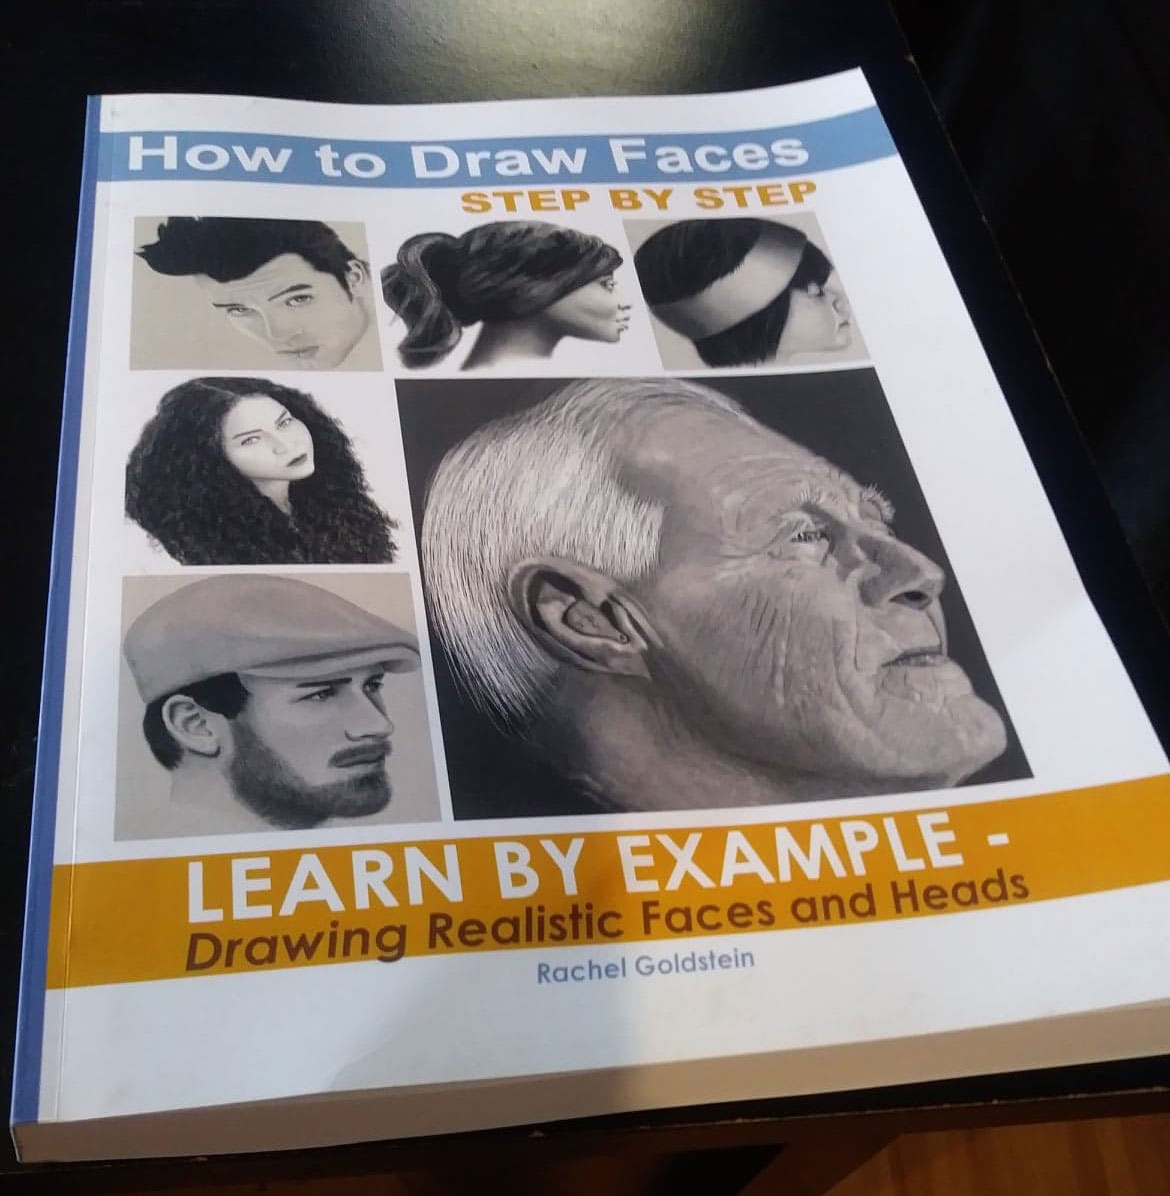 drawing faces - how to draw faces step by step book